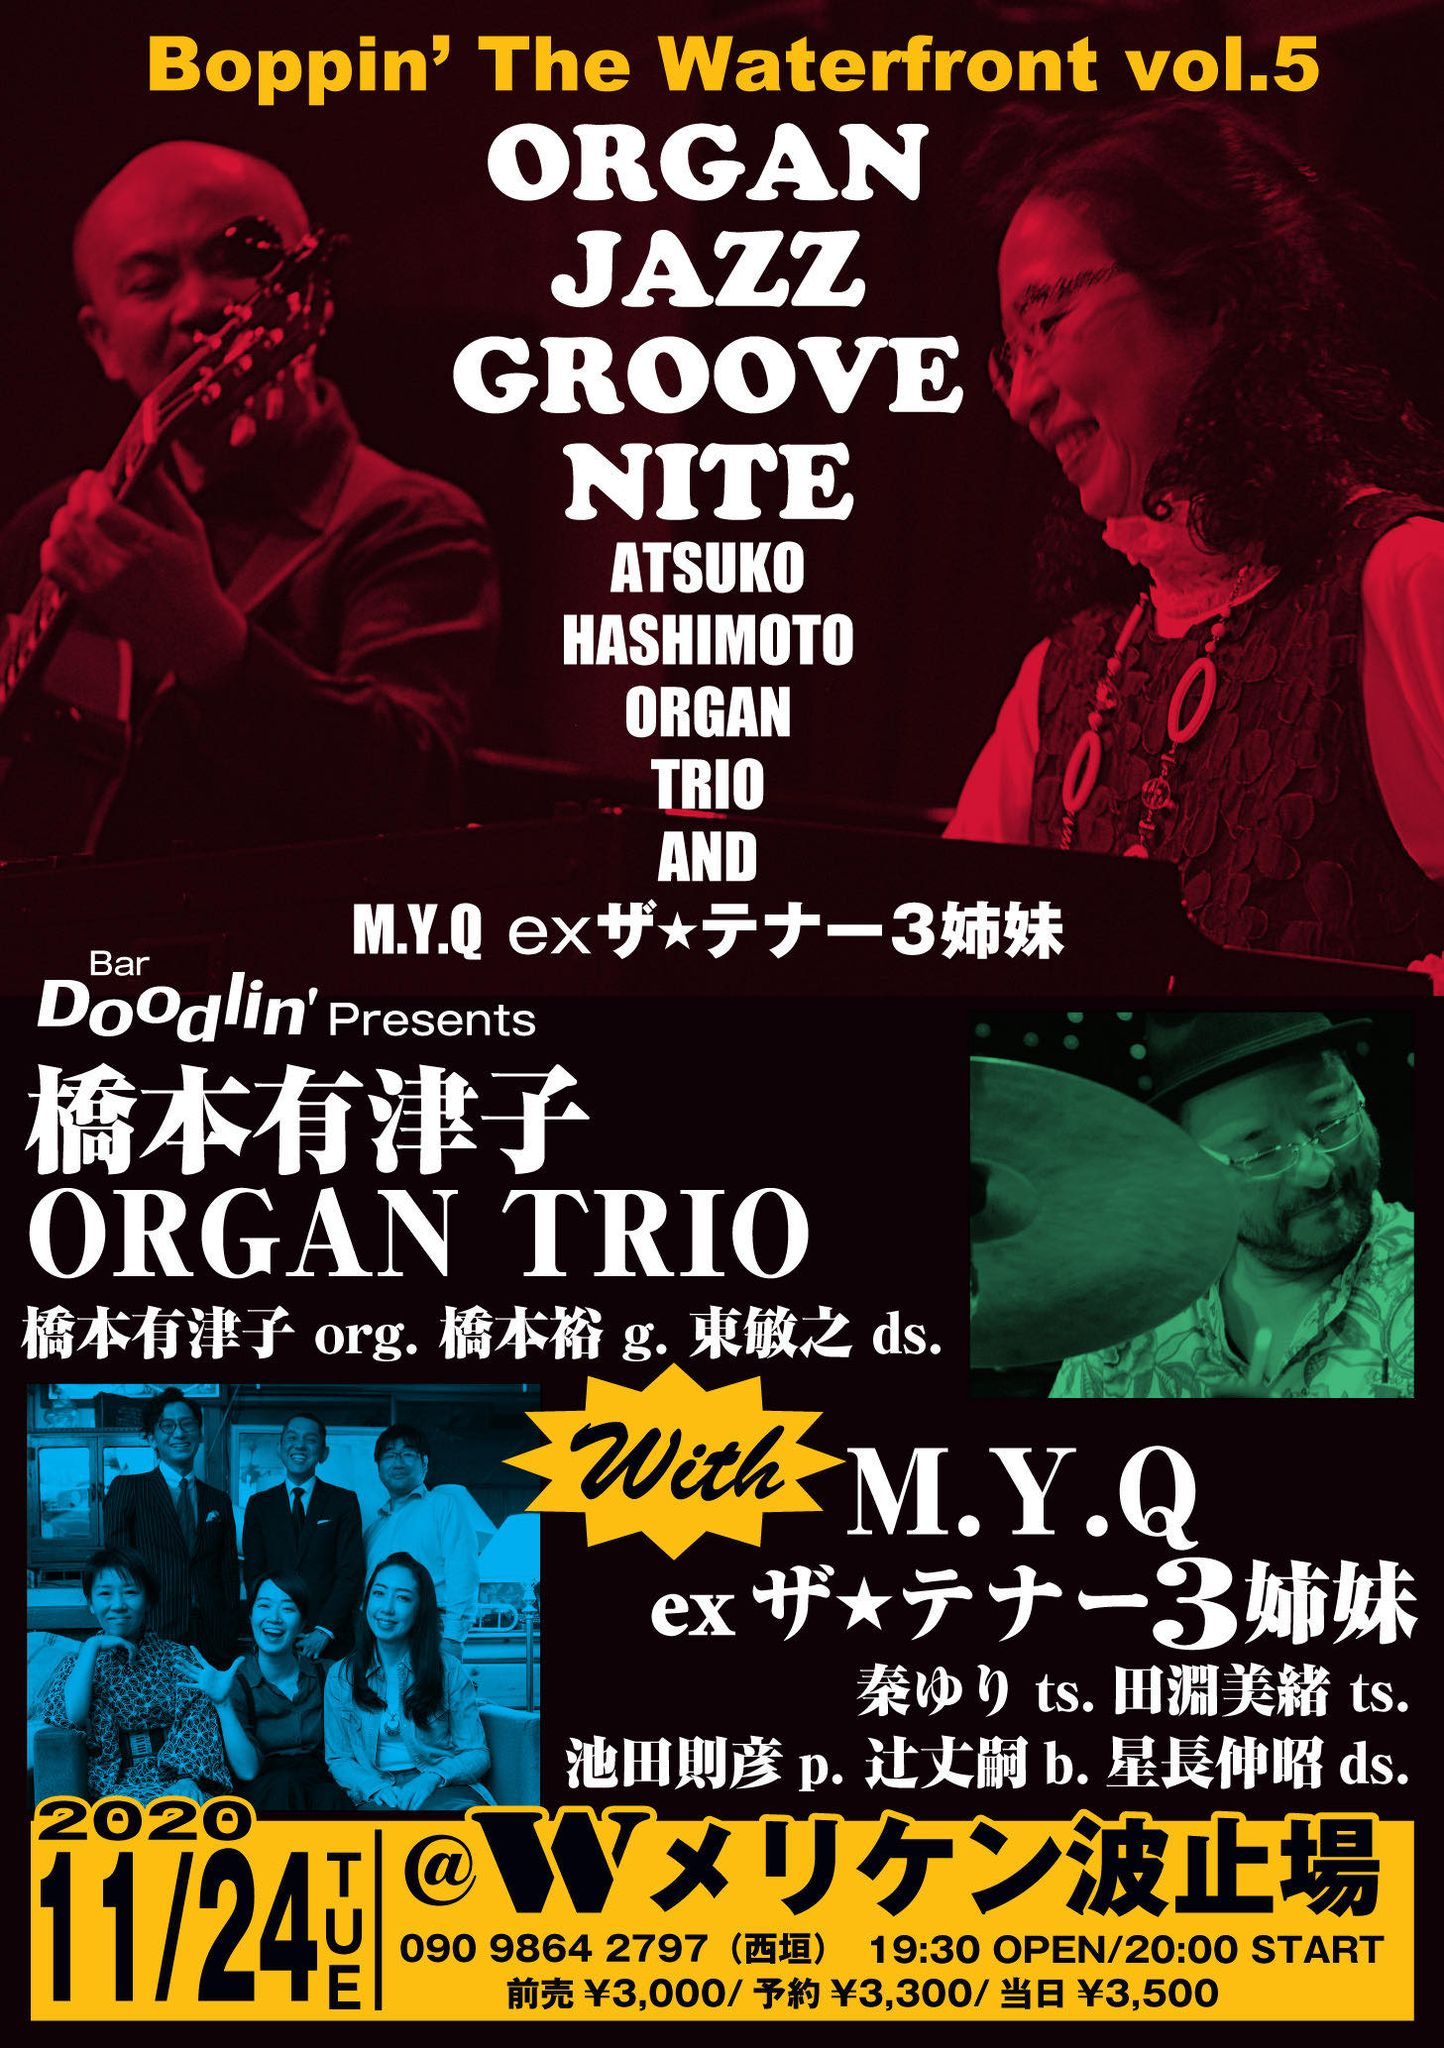 Wメリケン波止場 Boppin' The Waterfront vol.5橋本有津子ORGAN TRIO with M.Y.Q